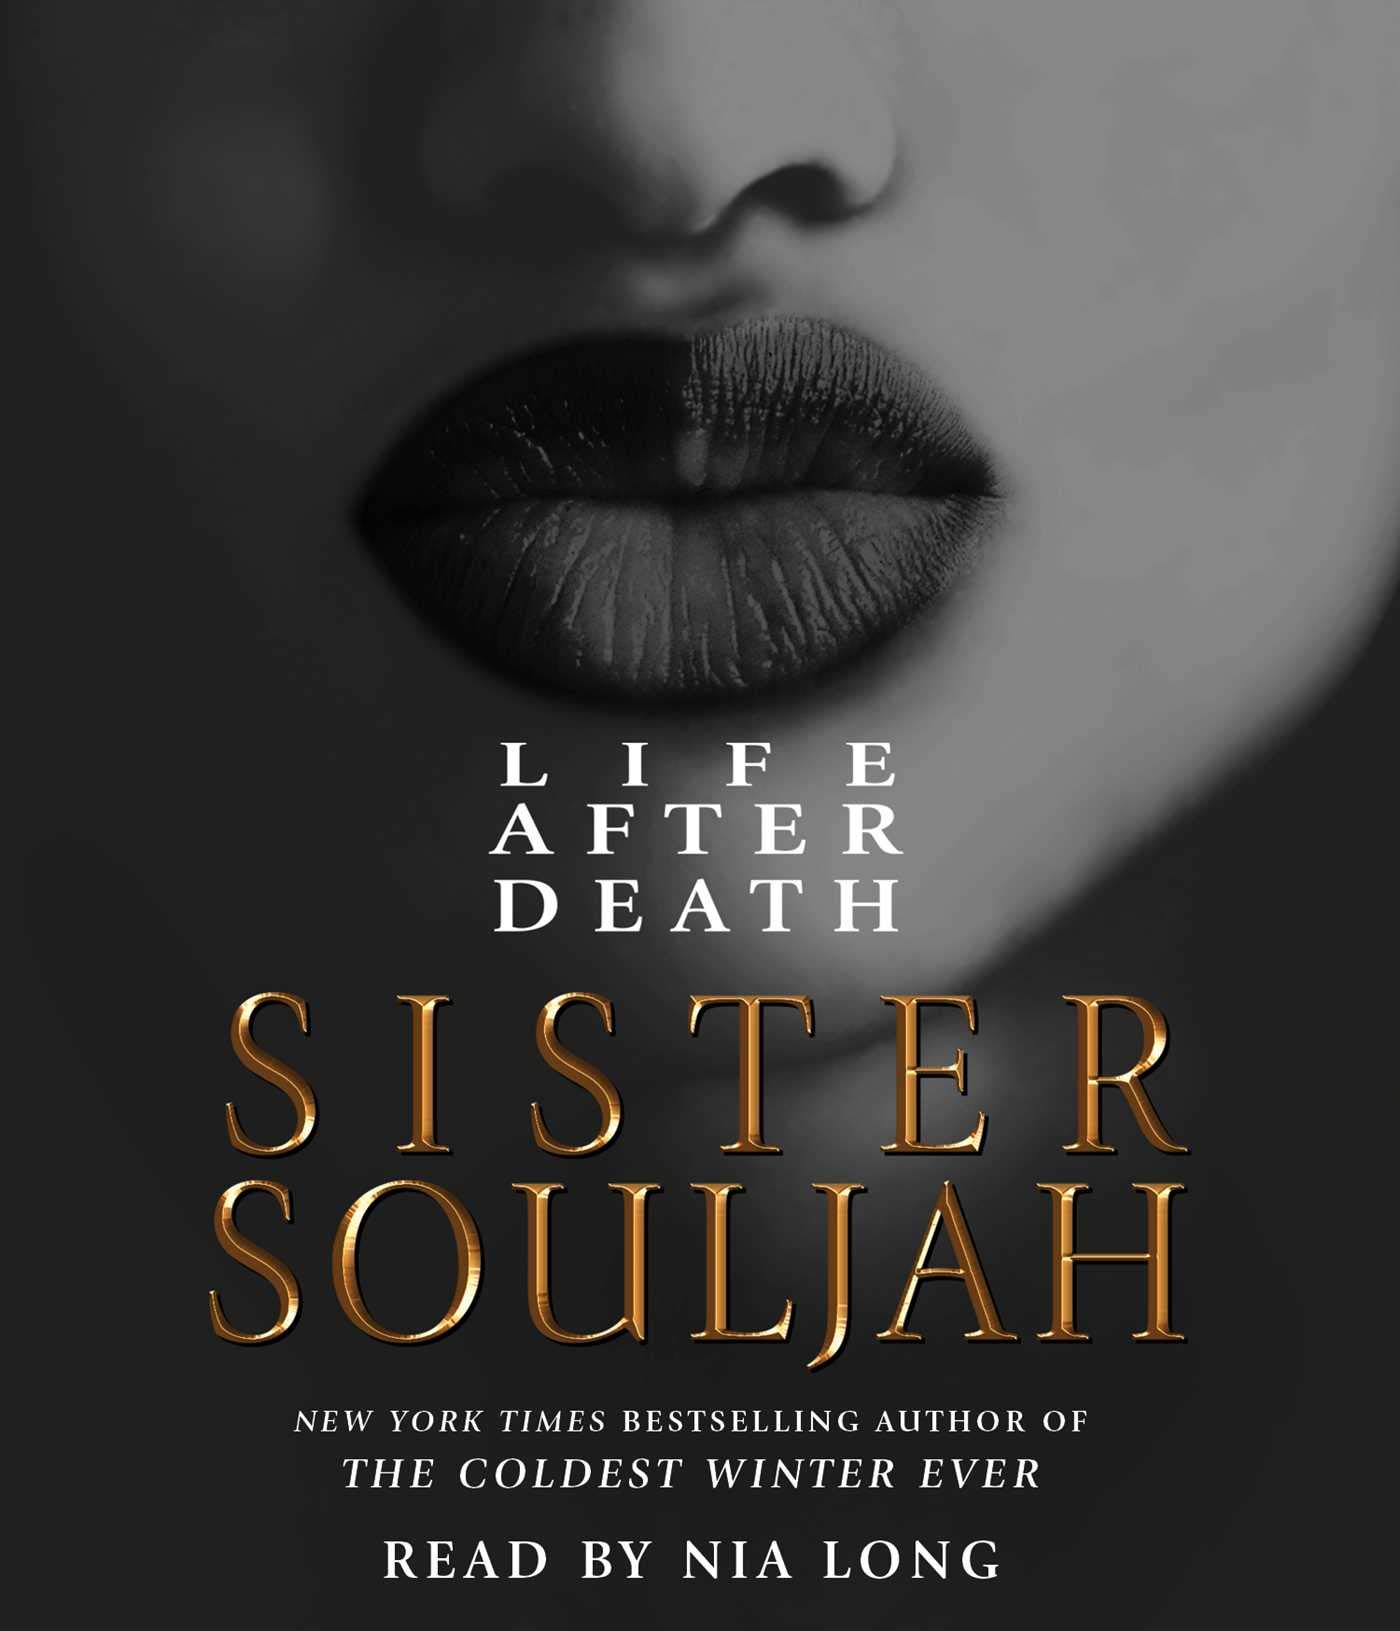 """Sister Souljah to discuss her new book, """"Life After Death"""" Live With Malik Books On Instagram Live"""